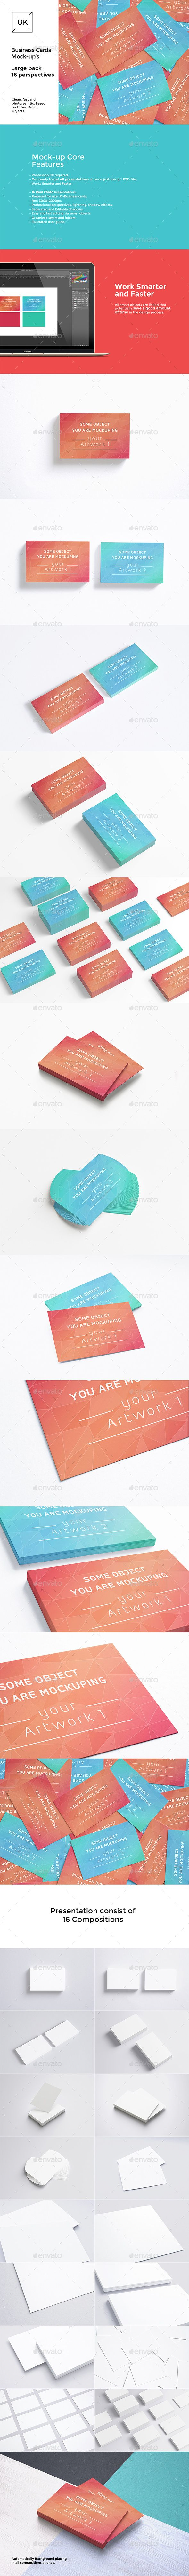 Uk business cards mock ups pack pinterest business cards mock uk business cards mockups pack photoshop psd graphic card available here reheart Choice Image